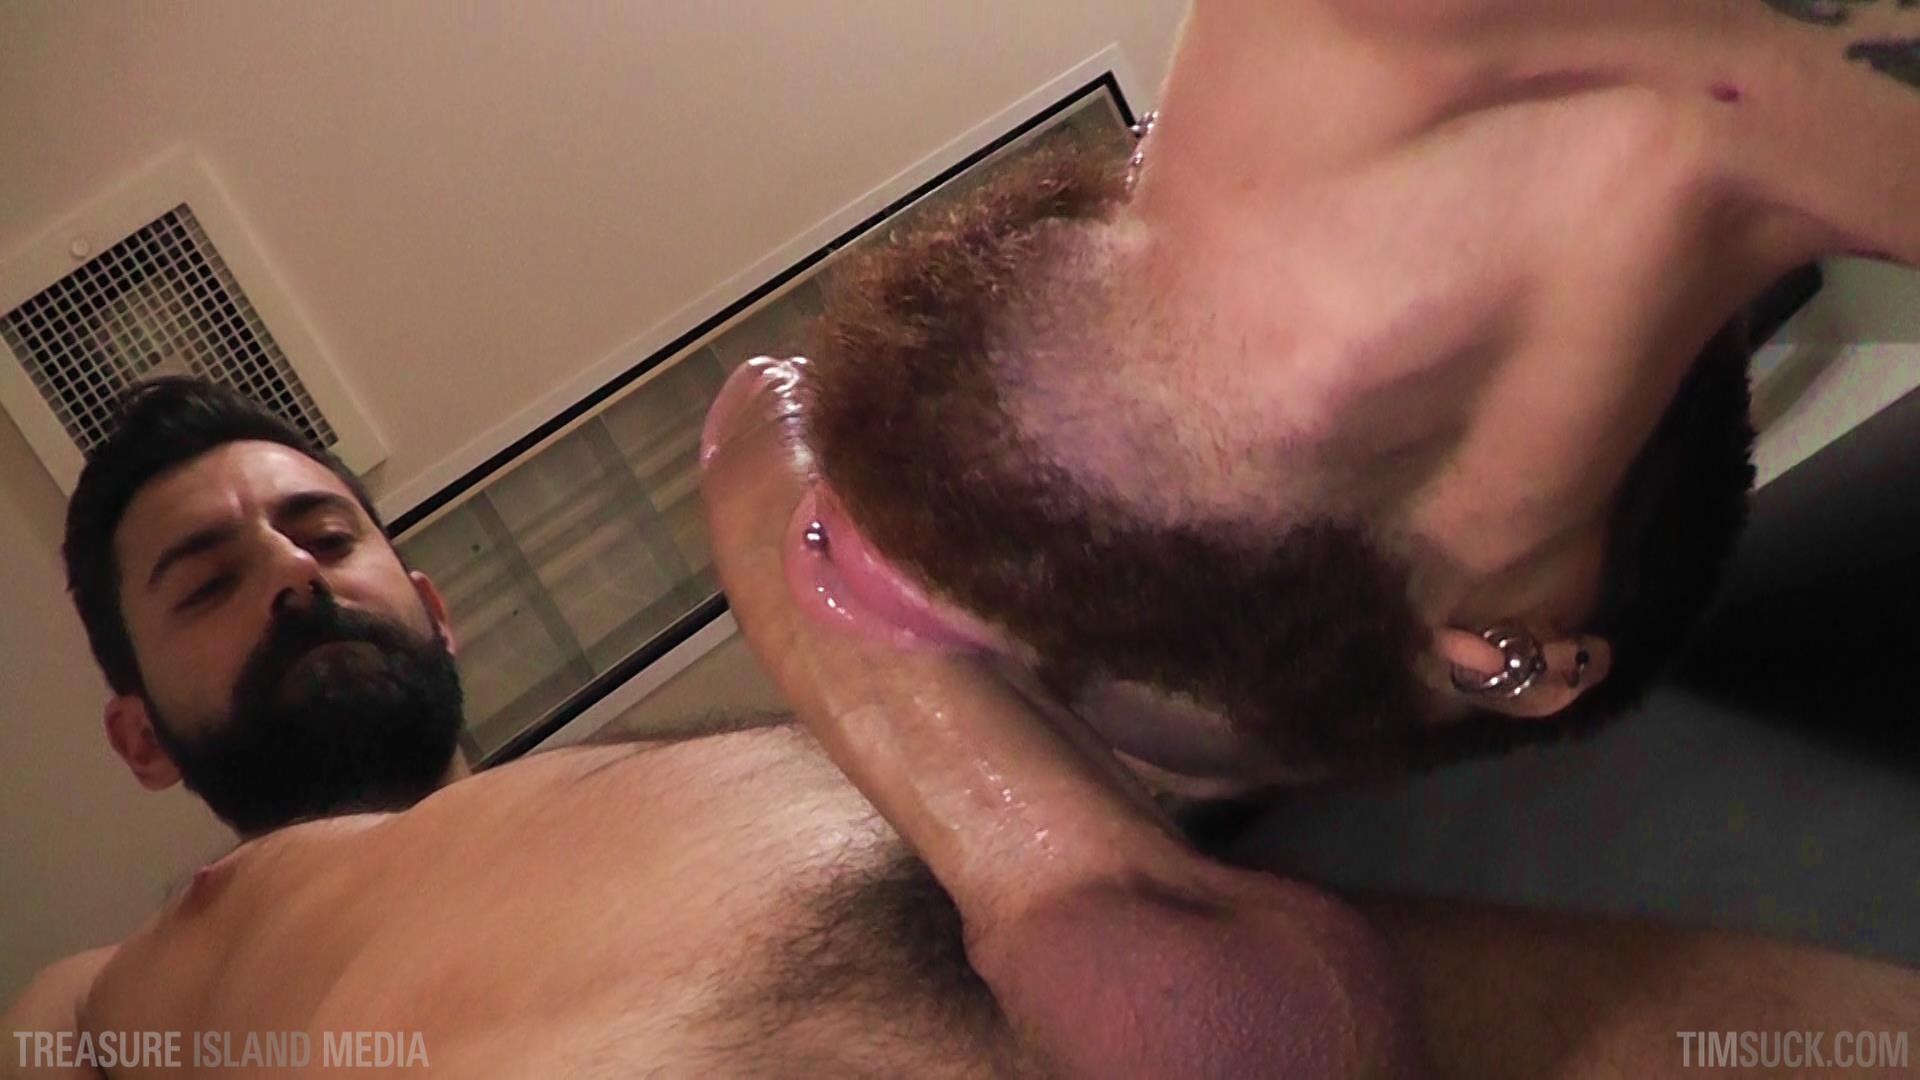 Treasure-Island-Media-TimSuck-Pete-Summers-and-Dean-Brody-Sucking-A-Big-Uncut-Cock-Amateur-Gay-Porn-20 Bearded Ginger Services A Big Uncut Cock And Eats The Cum